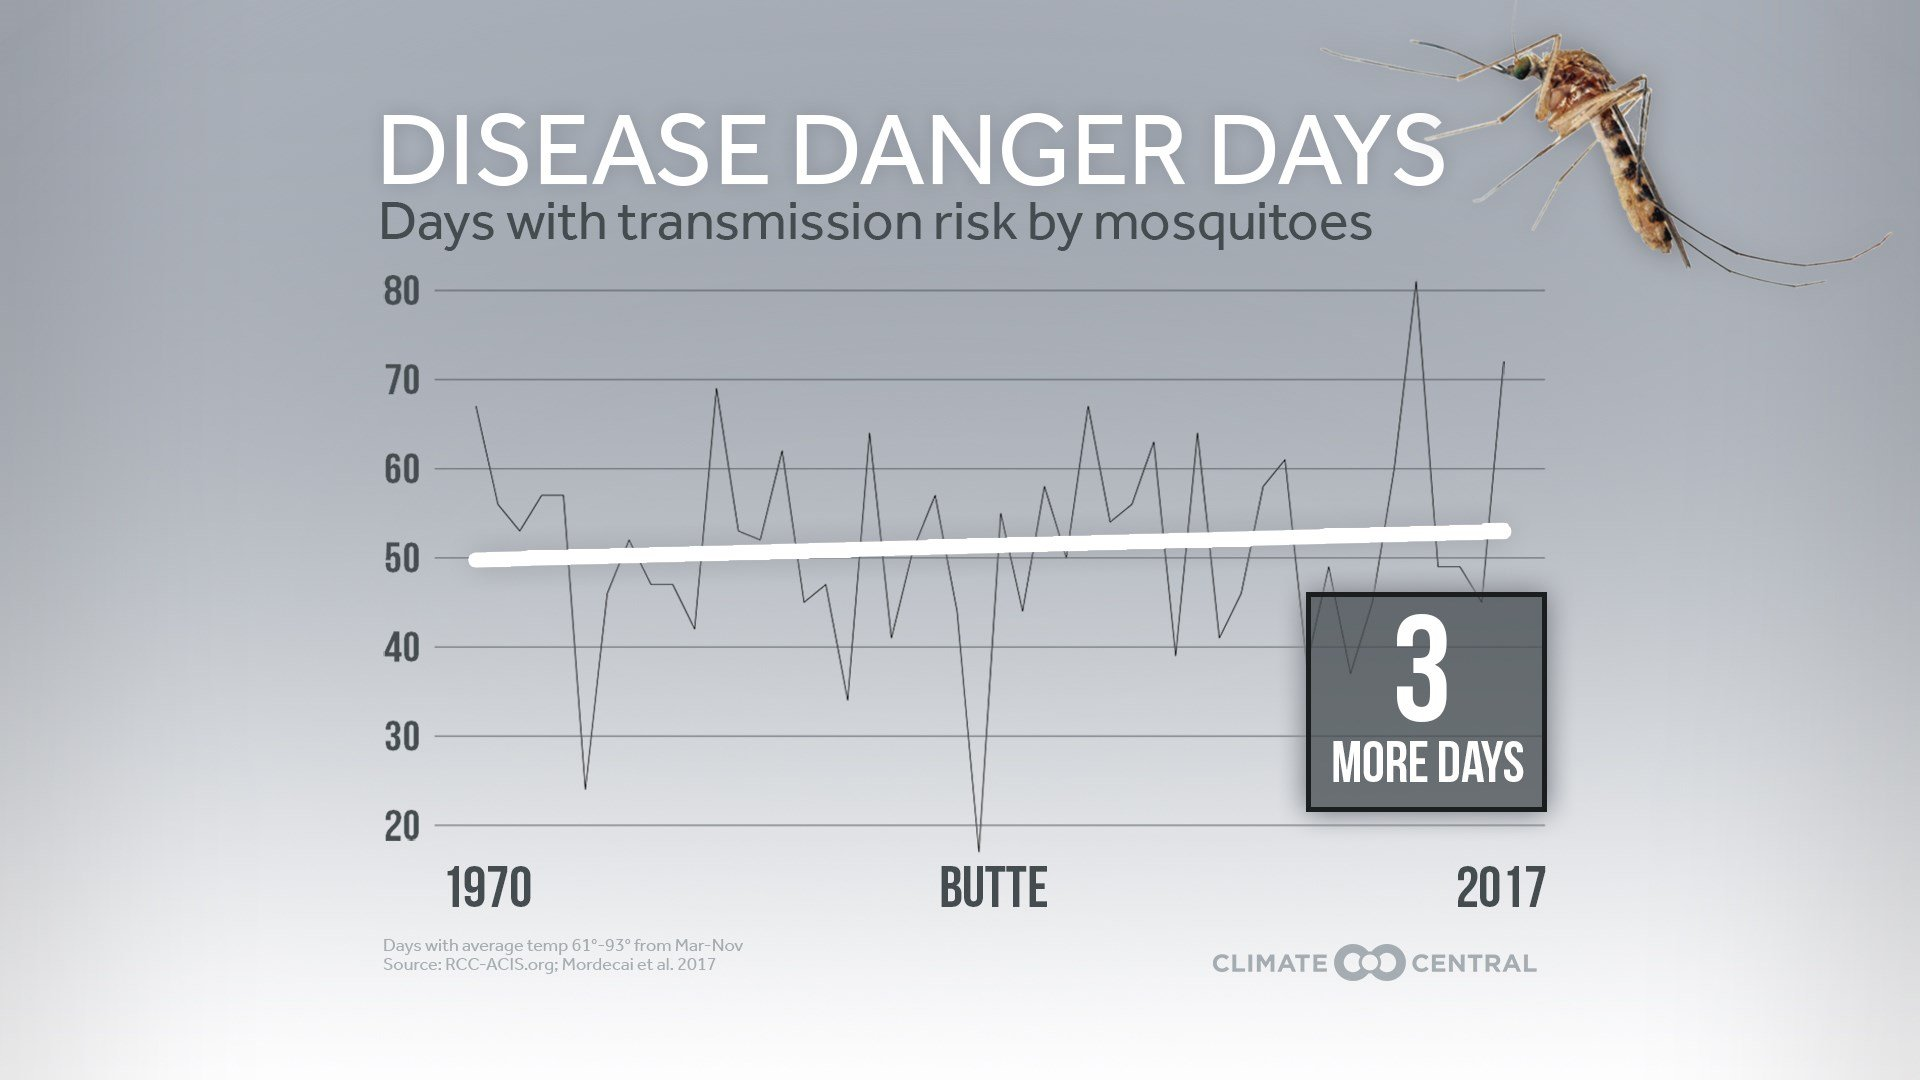 Slight Increase In Mosquito Disease Danger Days For Butte - KXLF.com - Continuous News - Butte, Montana Slight Increase In Mosquito Disease Danger Days For Butte - 웹